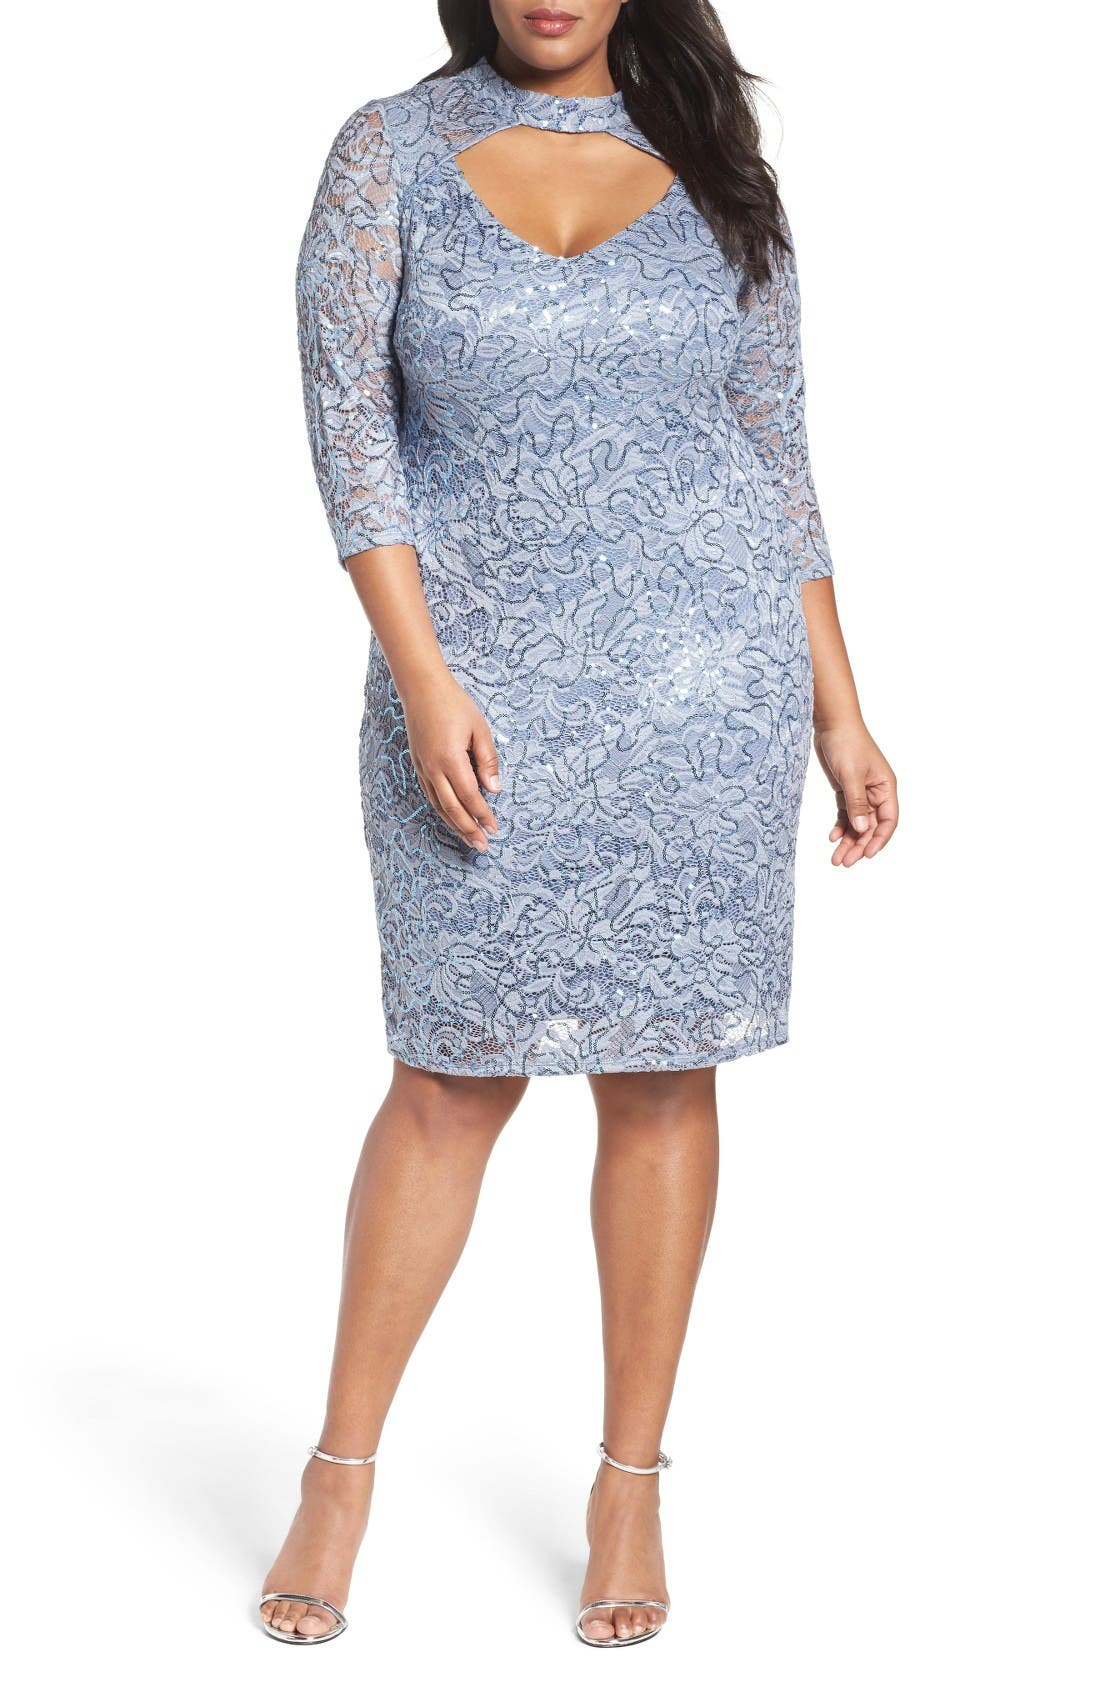 Alternate Image 1 Selected - Marina Cutout Sequin Lace Sheath Dress (Plus Size)